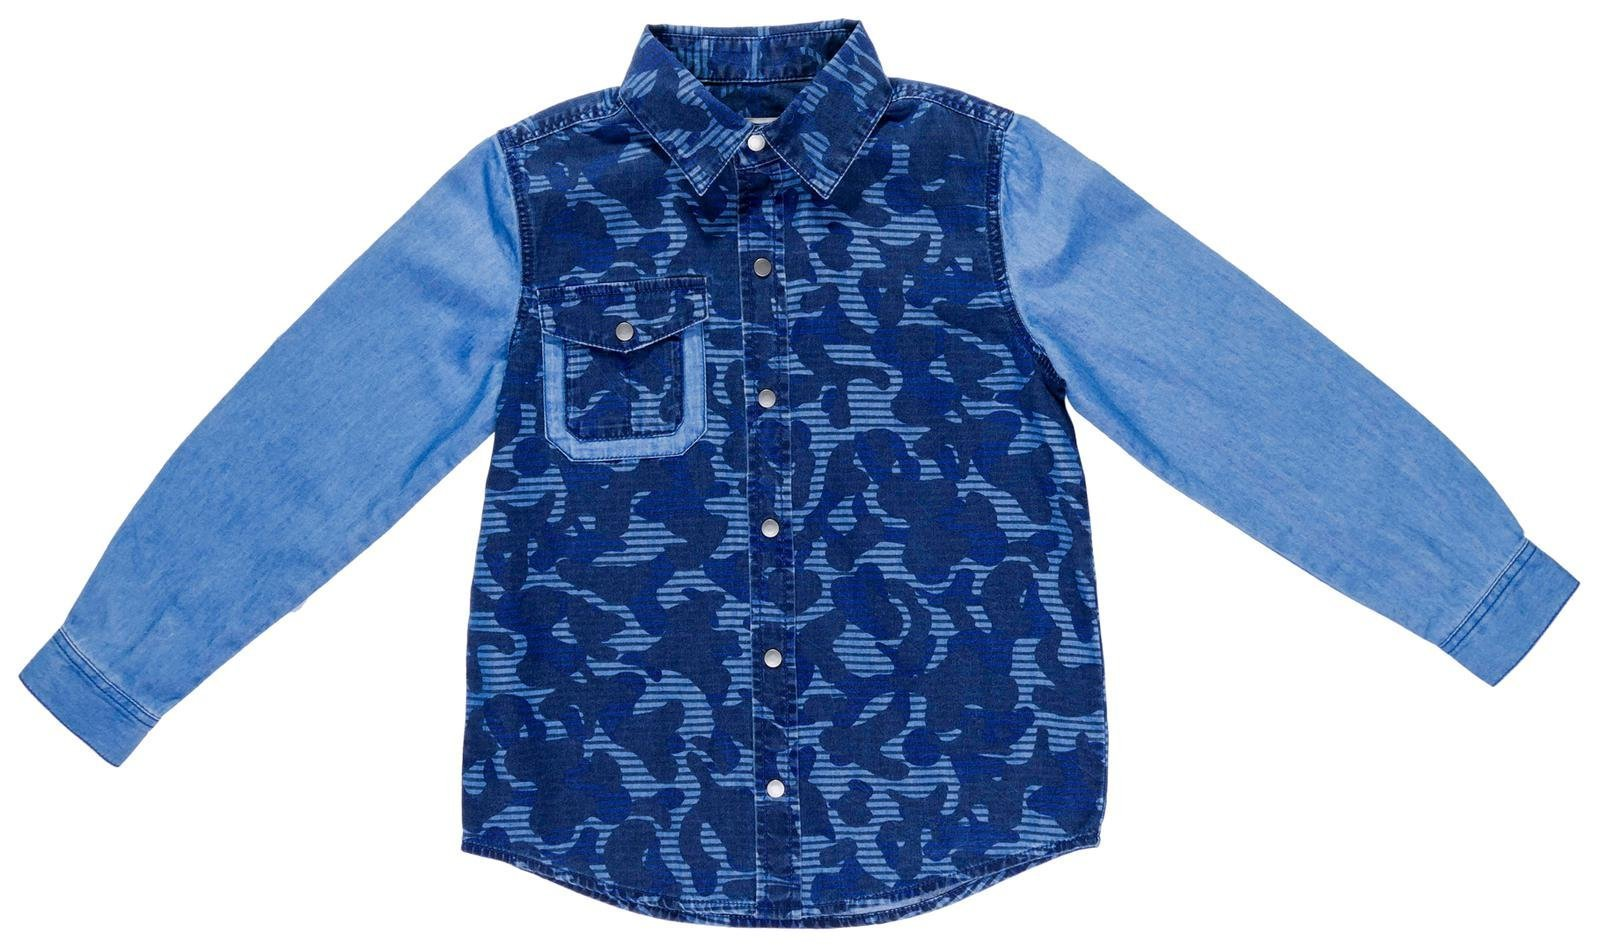 Stella McCartney Kids Boys' Samuel Camo Printed Shirt, Blue, 6 by Stella McCartney Kids